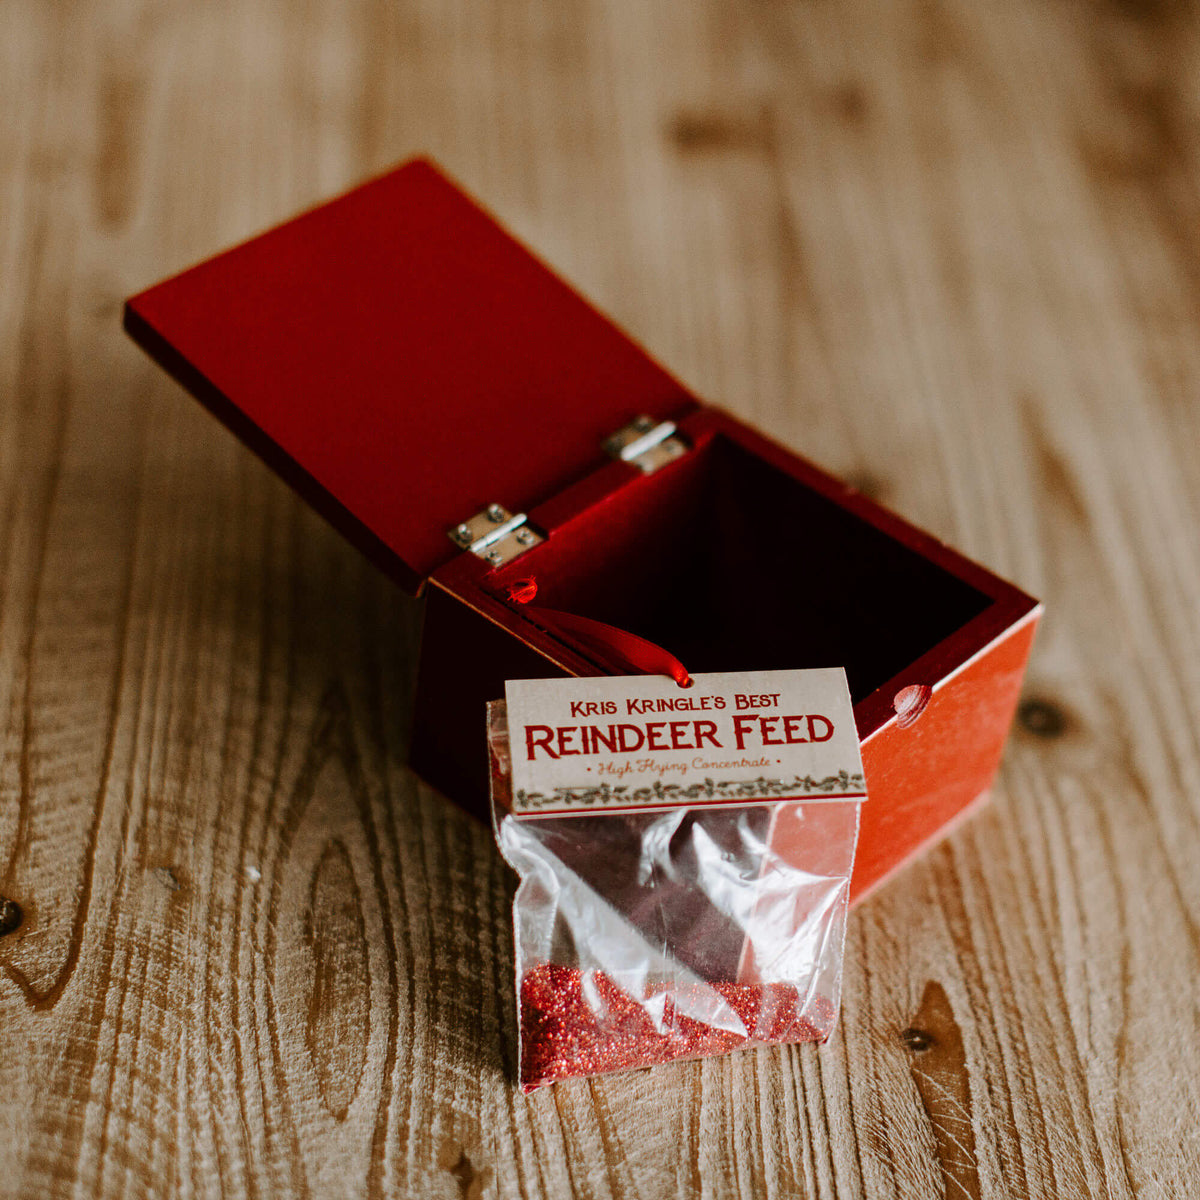 The contents of an old-looking box is a bag of red glitter with the label Kris Kringle's Best Reindeer Feed